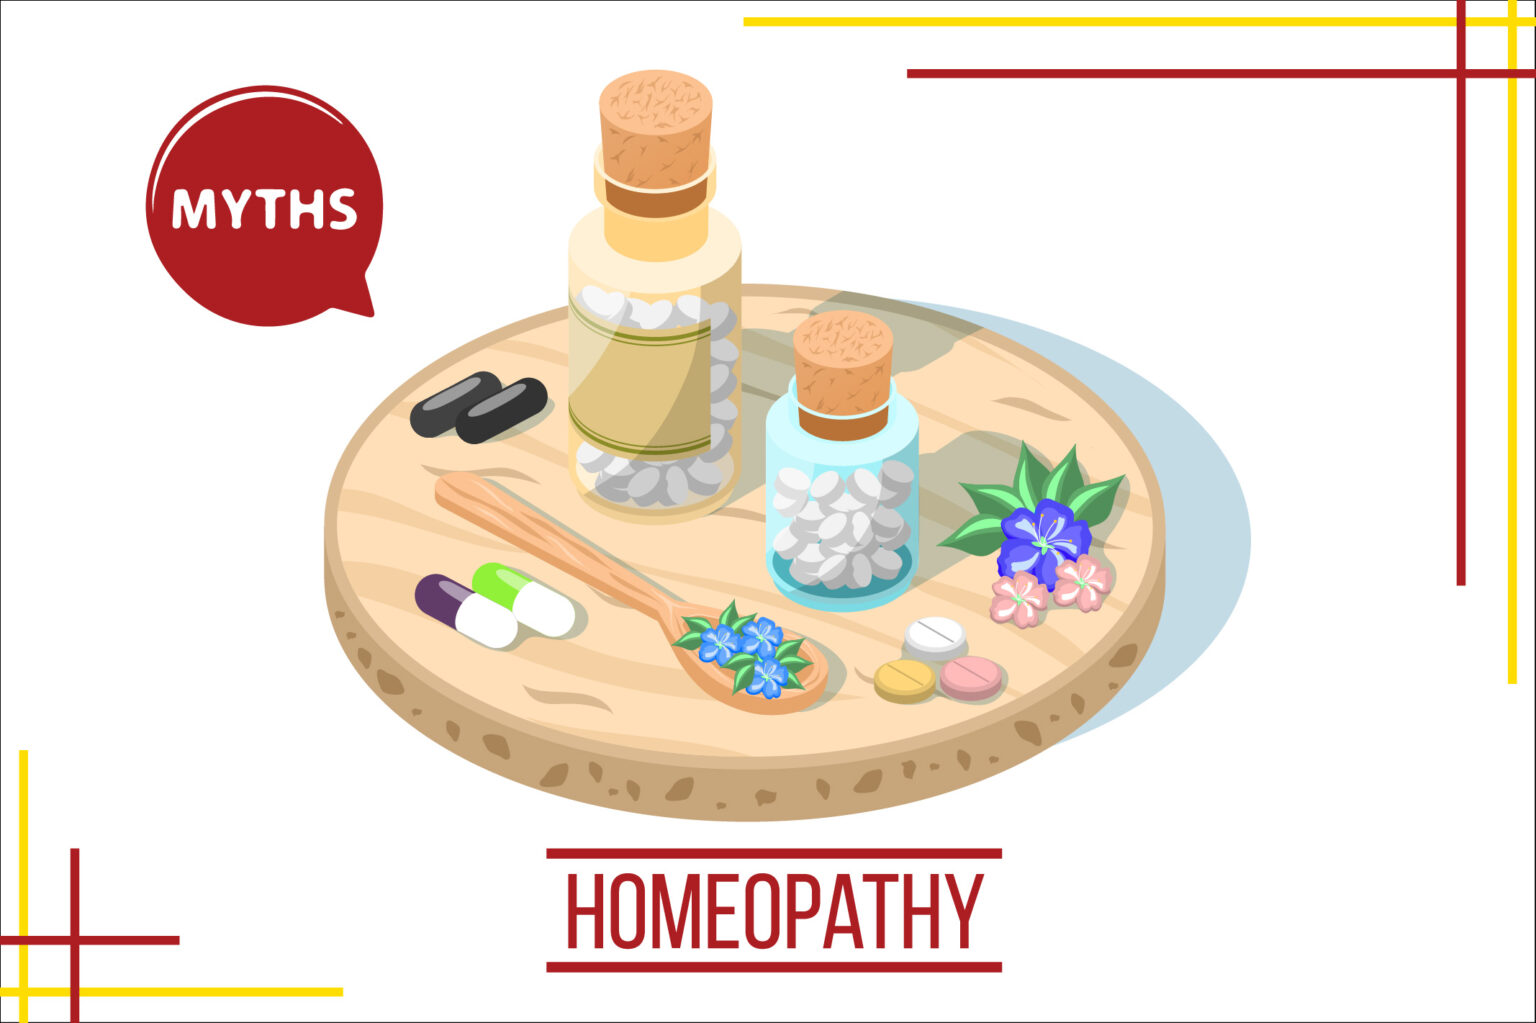 Myths Of Homeopathy